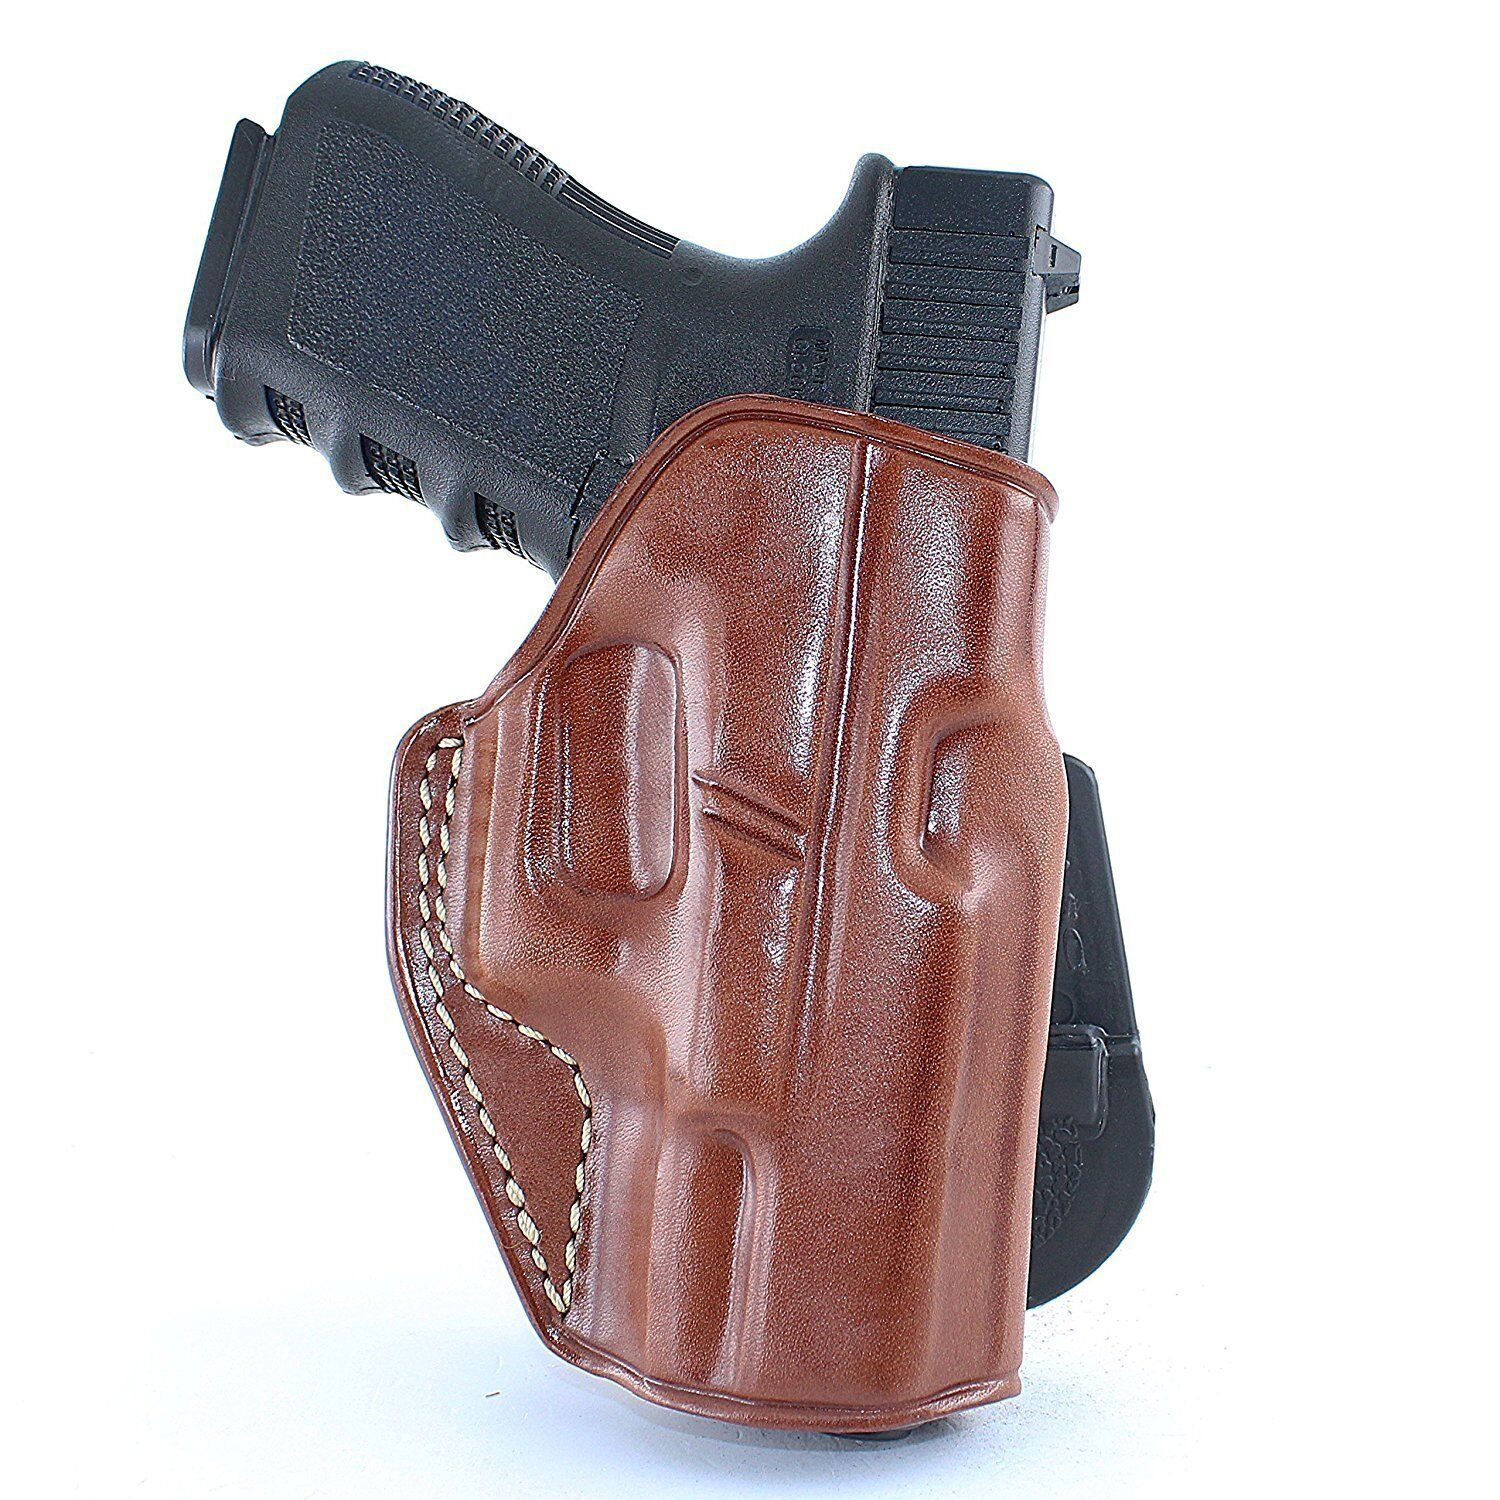 Leather OWB Paddle Holster With Open Top Fits, Kel-Tec P3 AT  PF9  PMR-30  R H